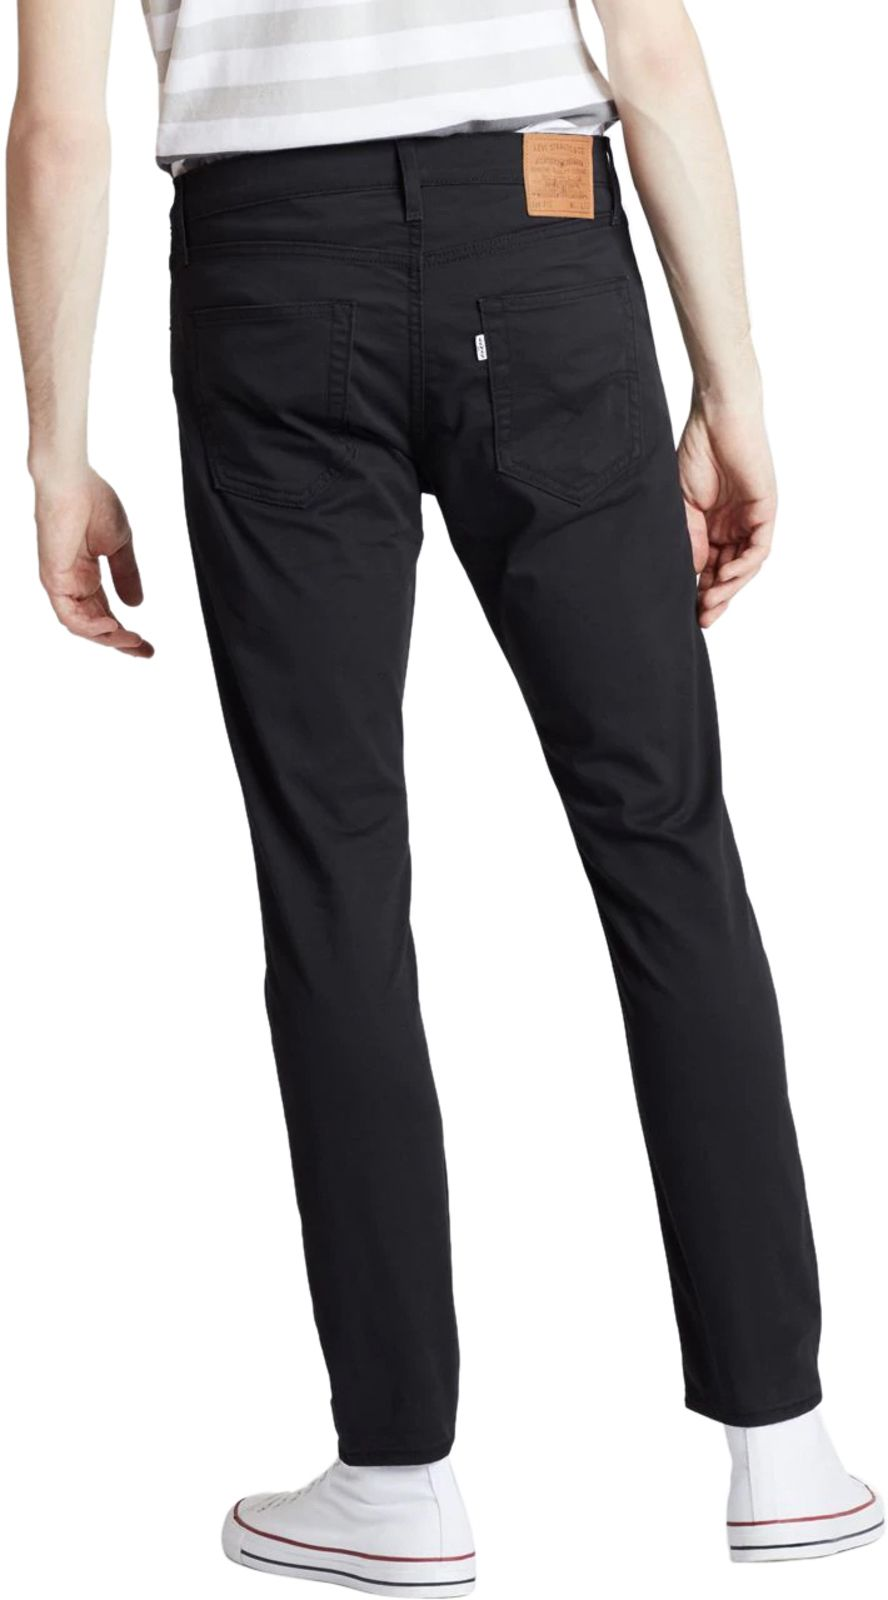 Levi's 512 Slim Taper Fit Denim Jeans Black